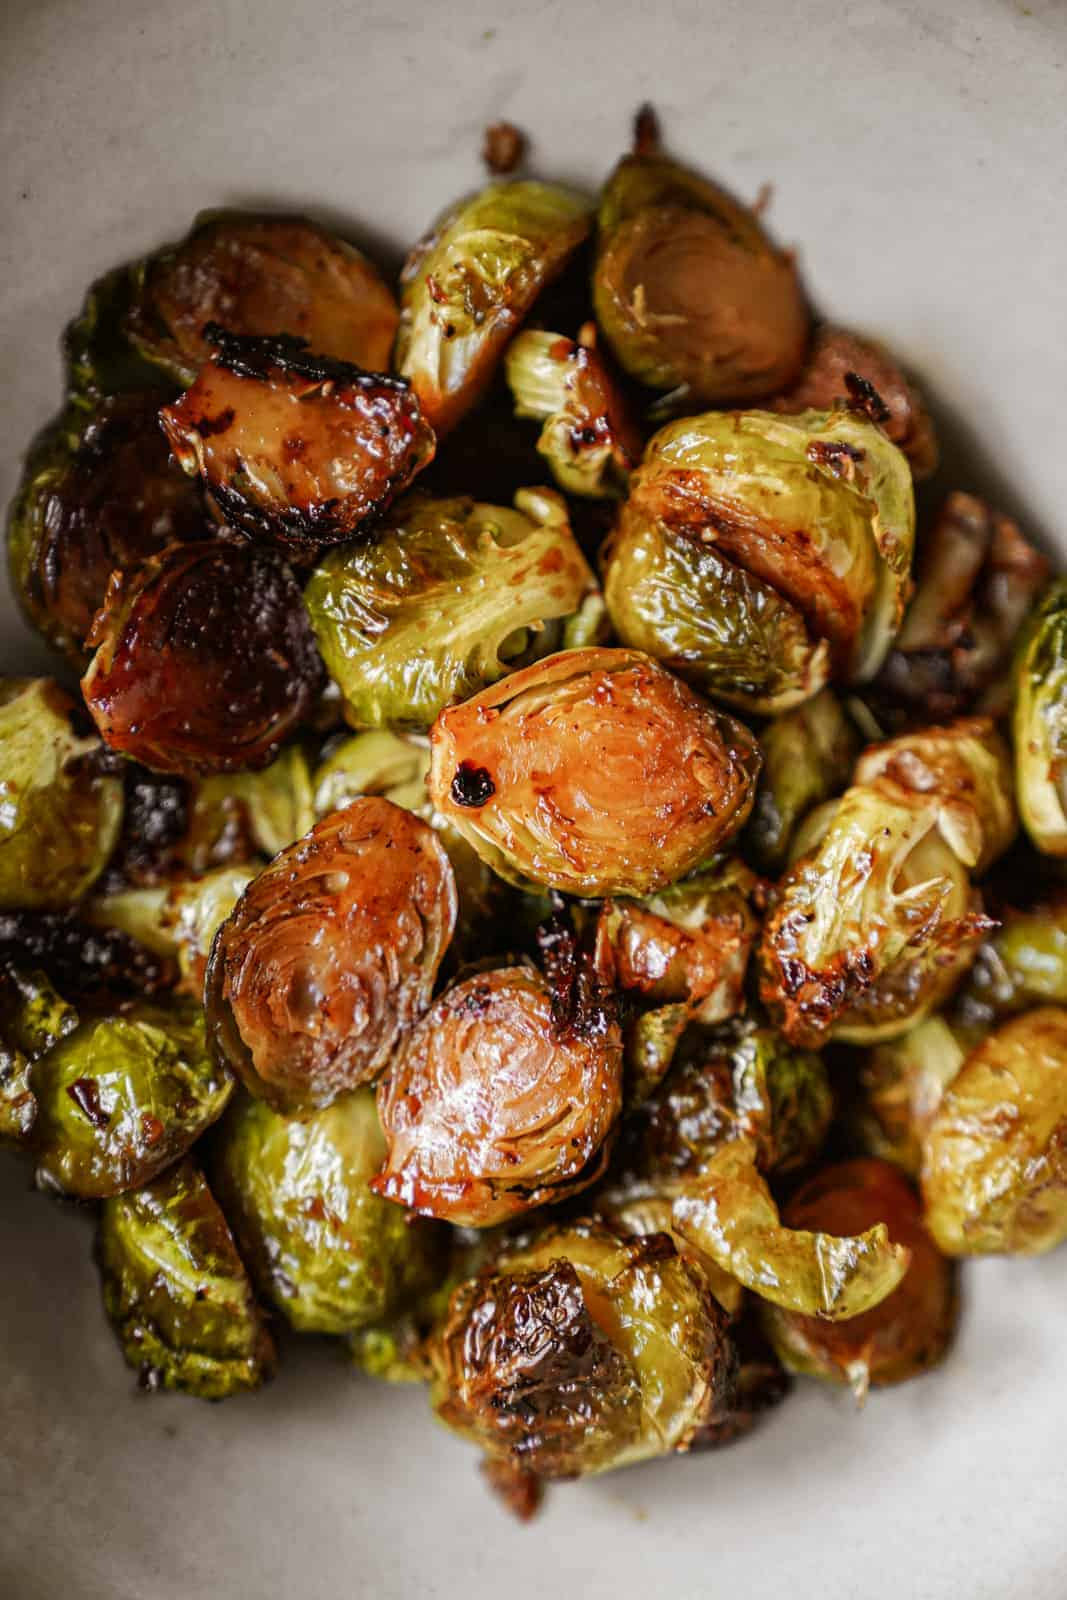 vegan brussel sprouts recipe close-up in a bowl